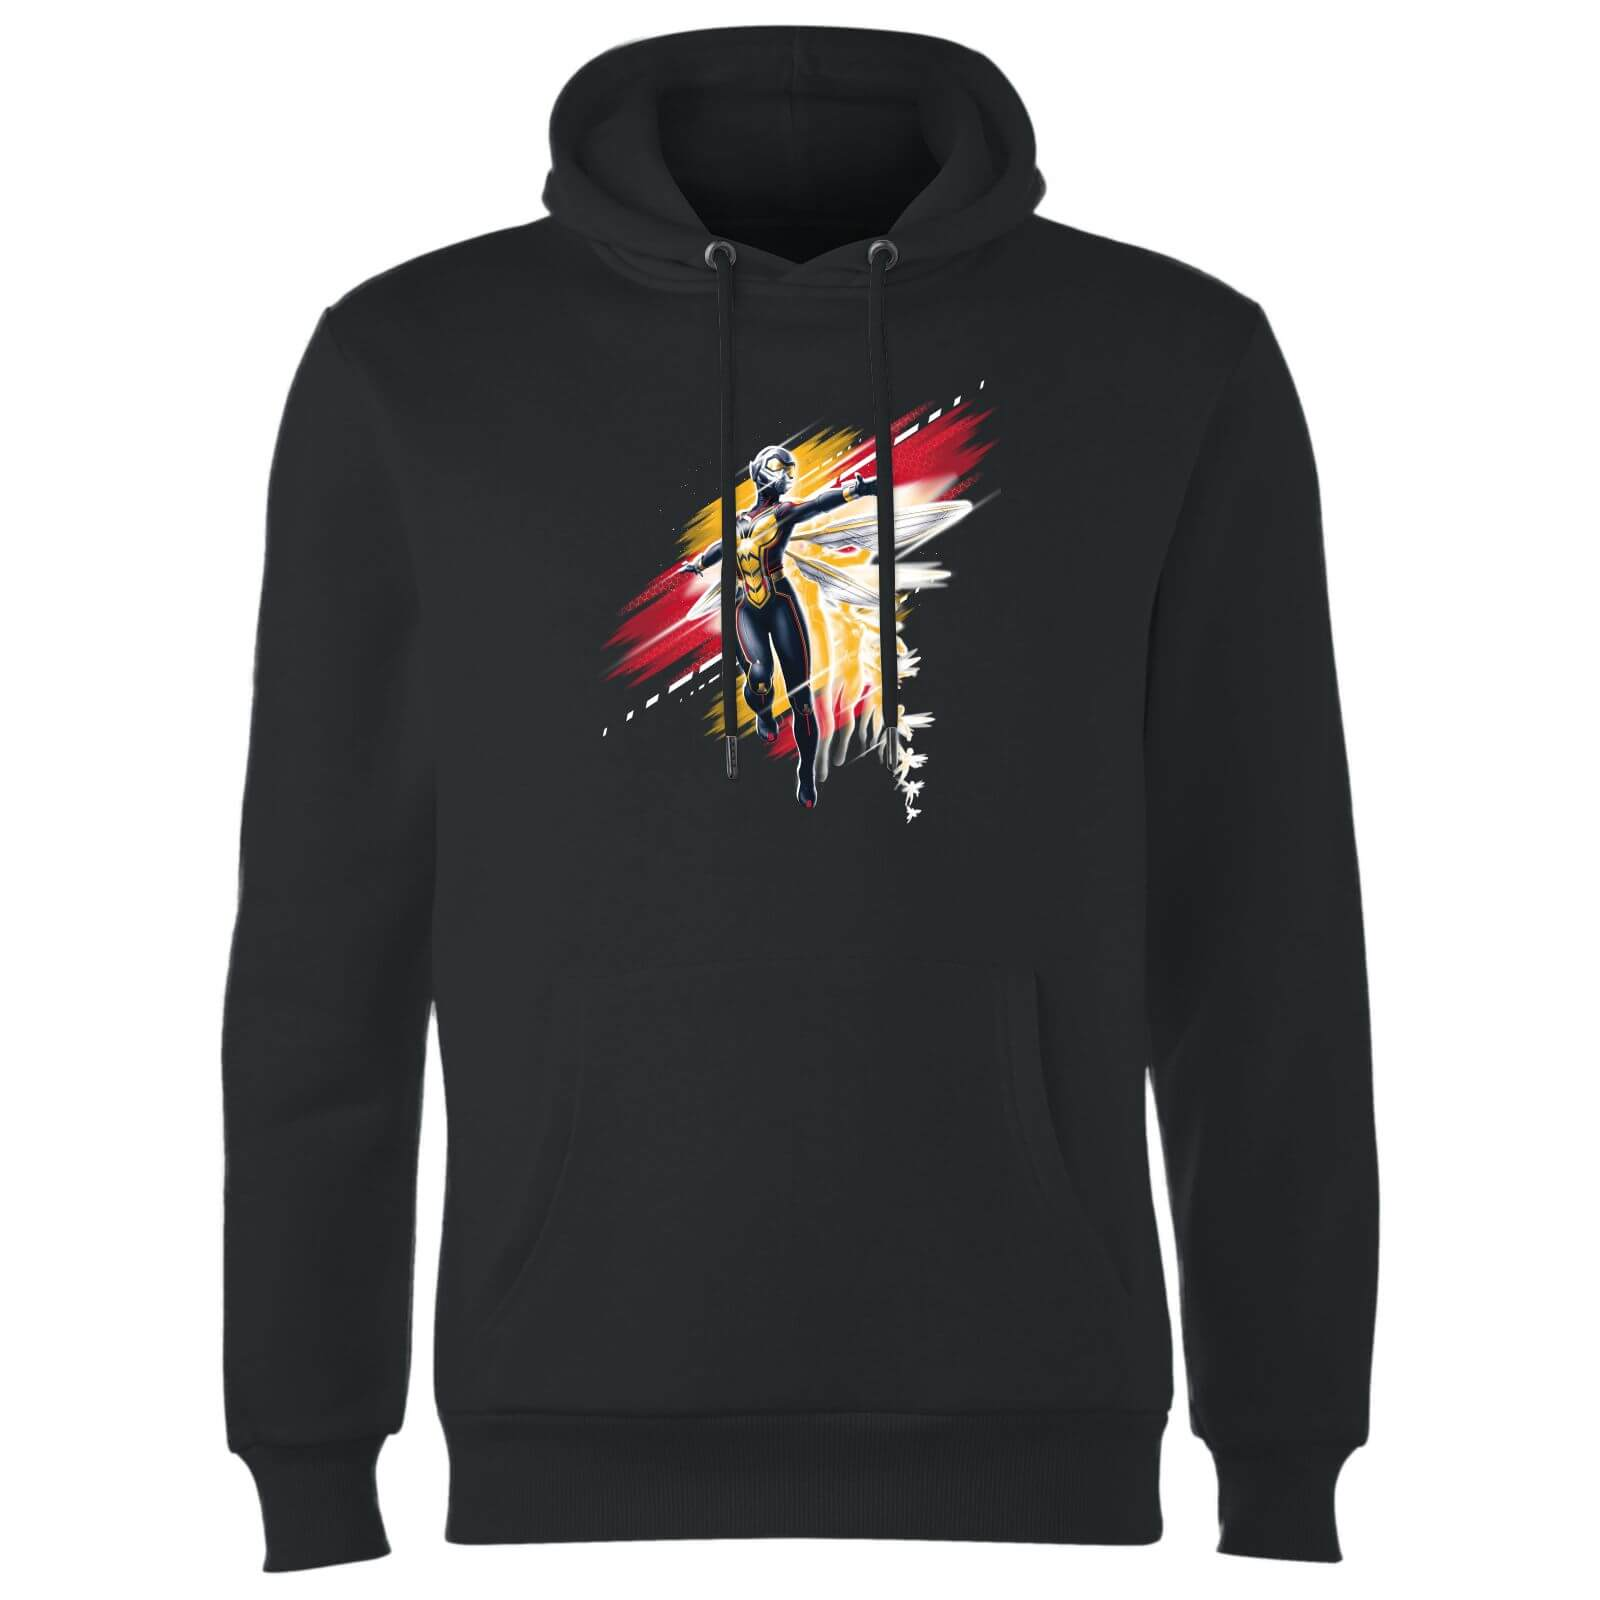 Ant-Man And The Wasp Brushed Hoodie - Black